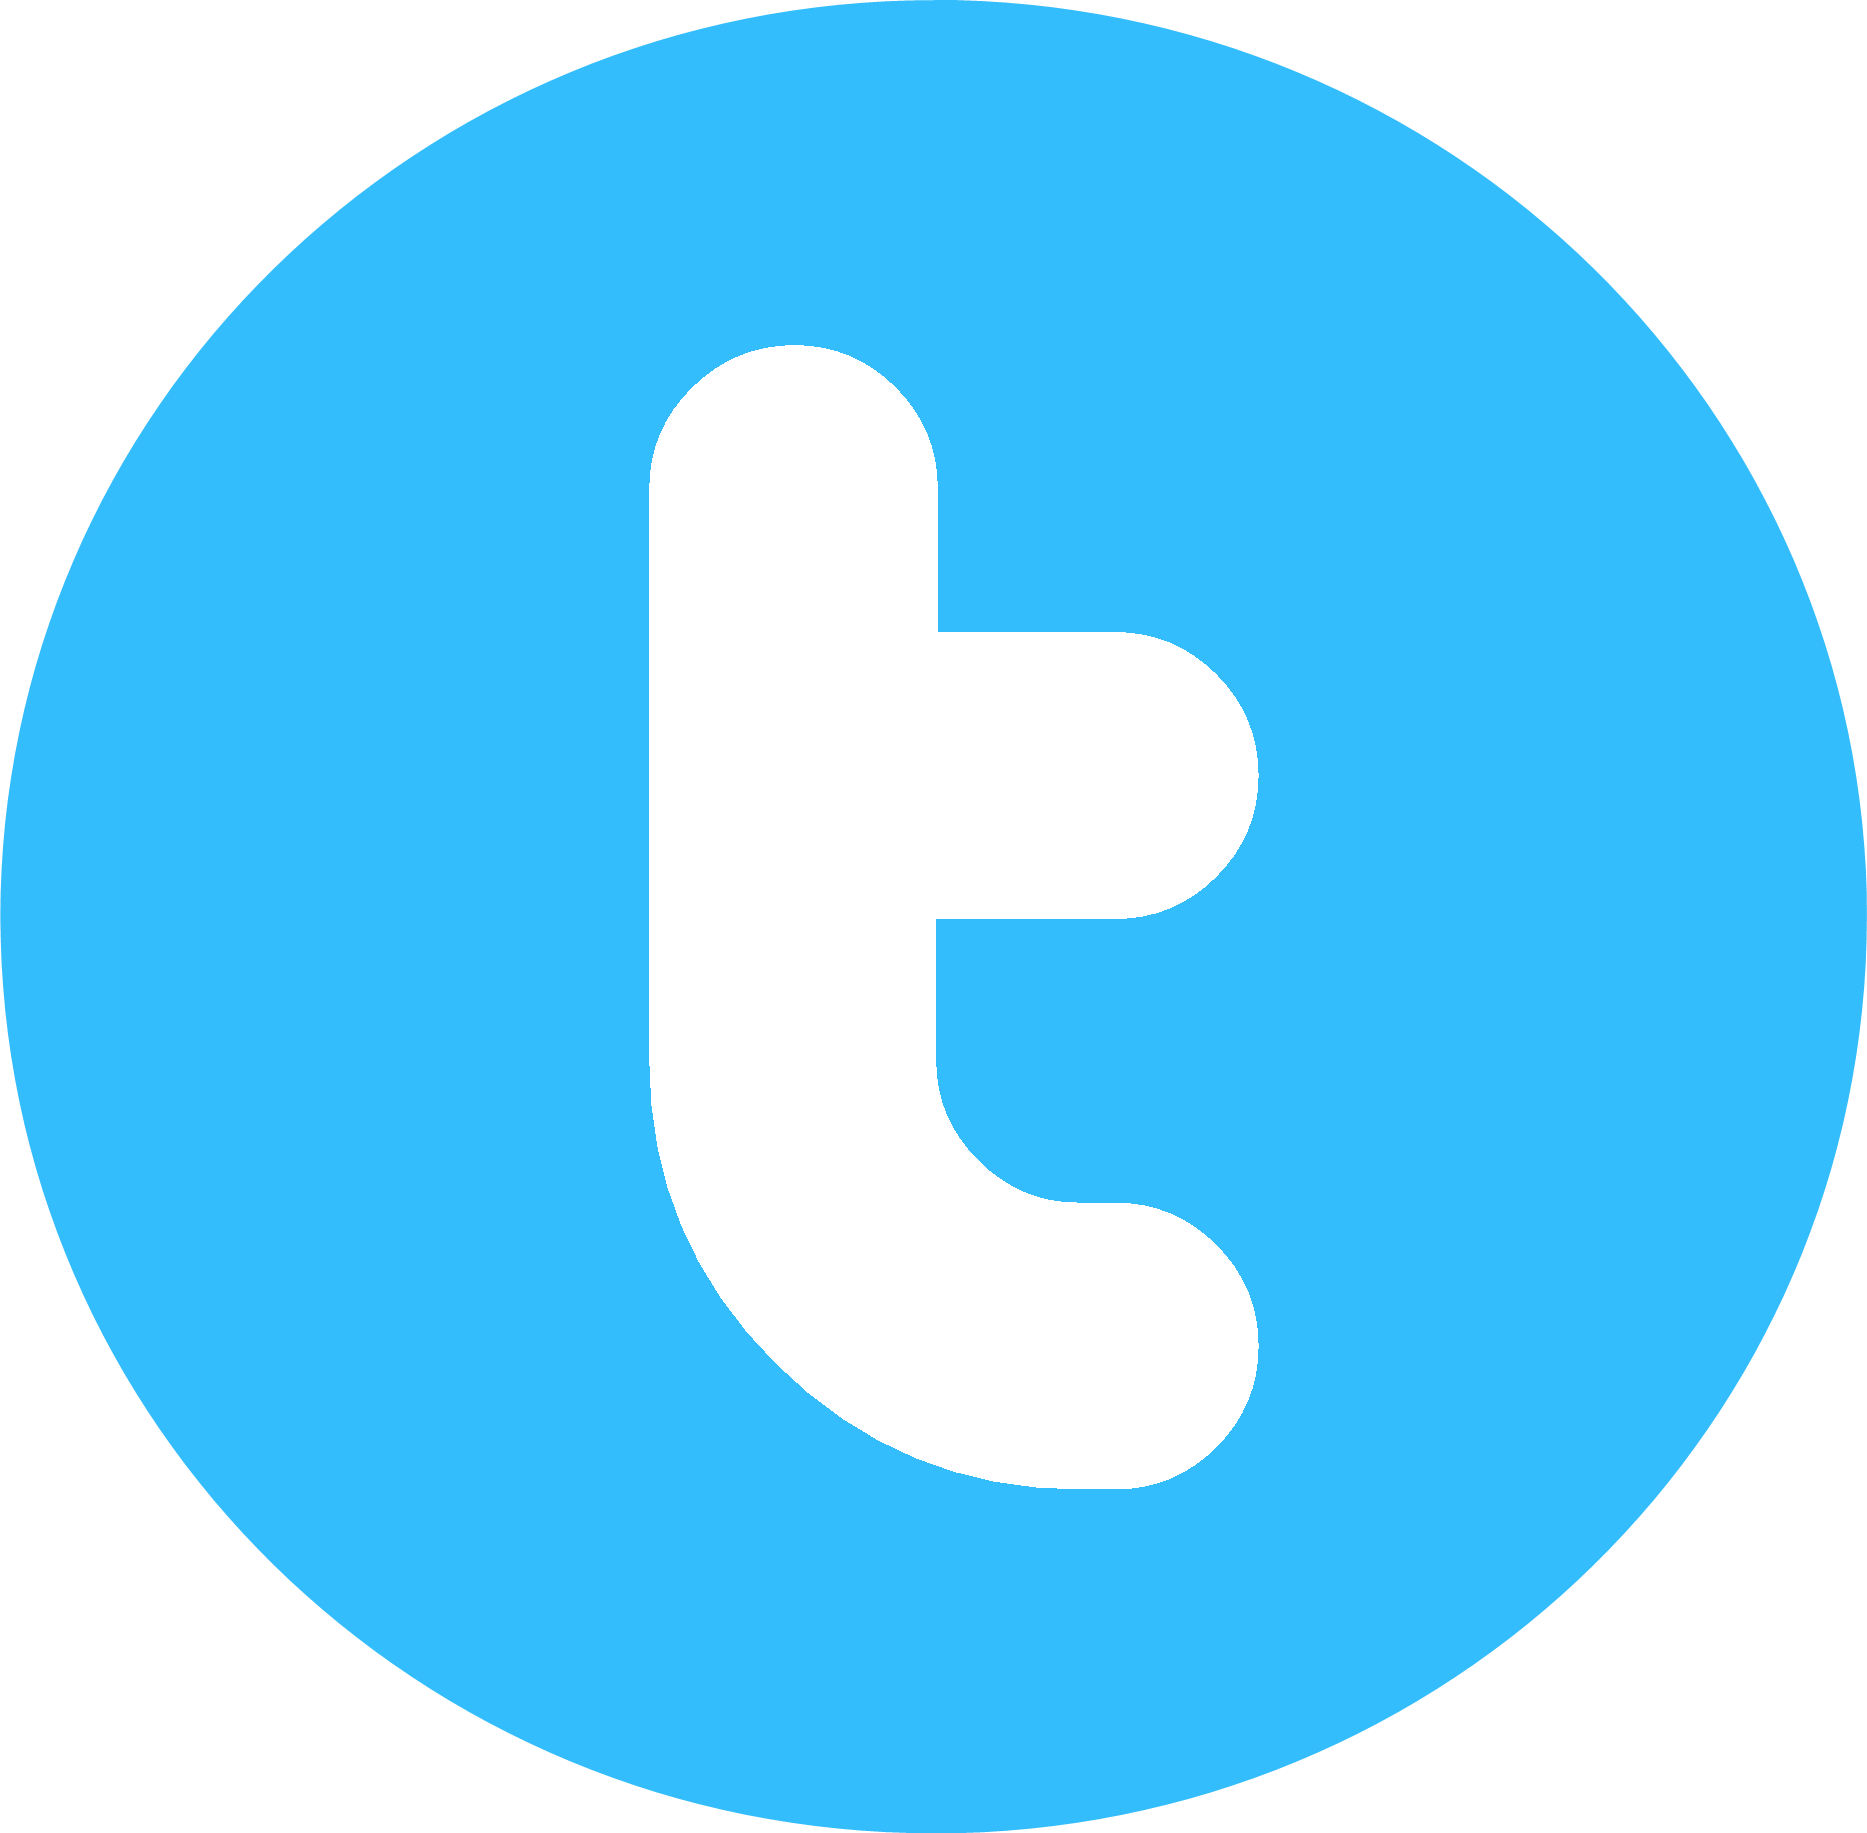 Twitter logo on black backgro